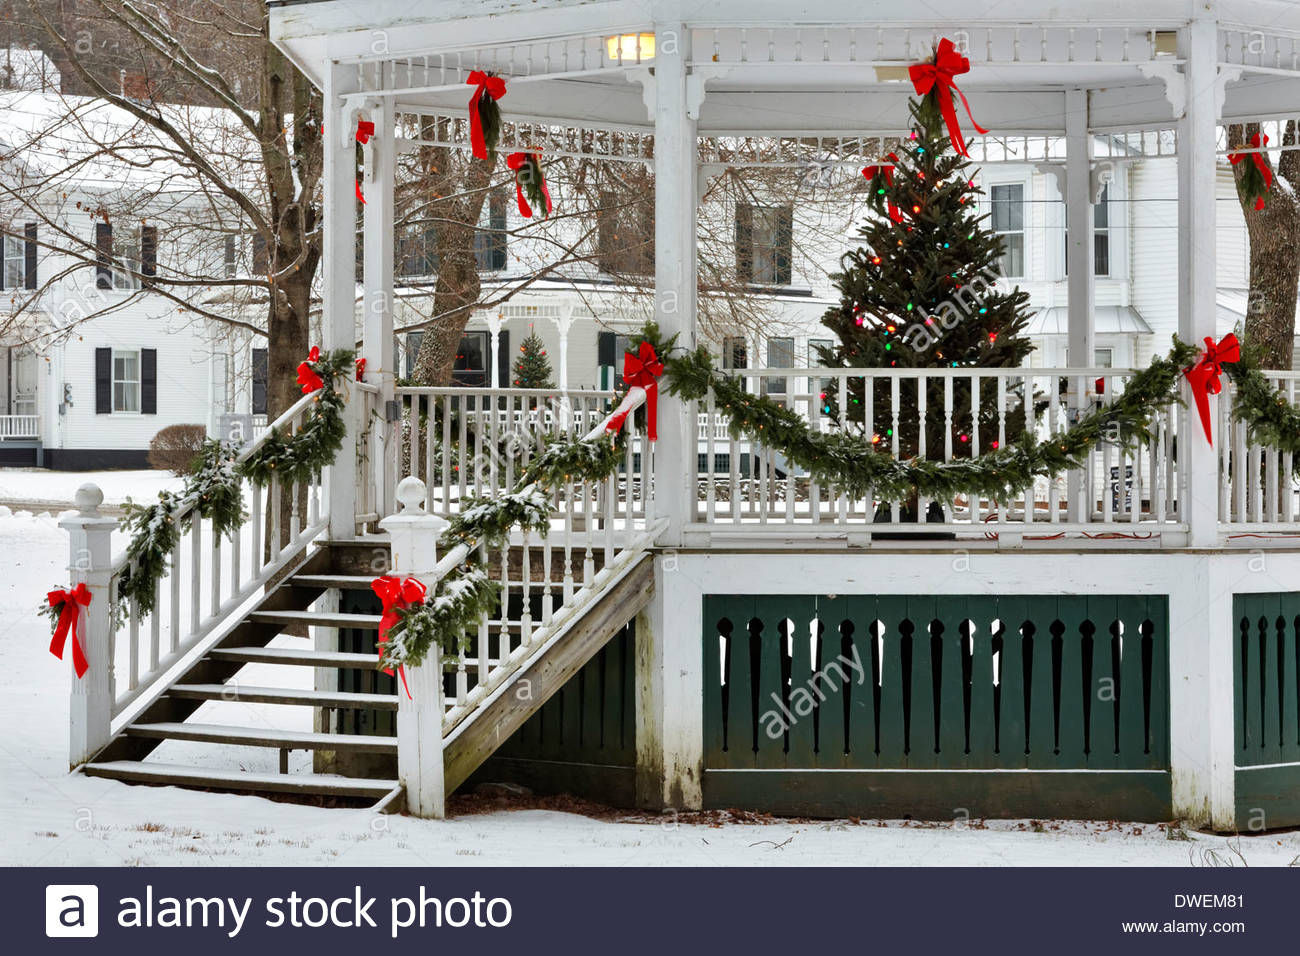 Christmas Decorations In Vermont : Christmas decorations on gazebo in town square of small